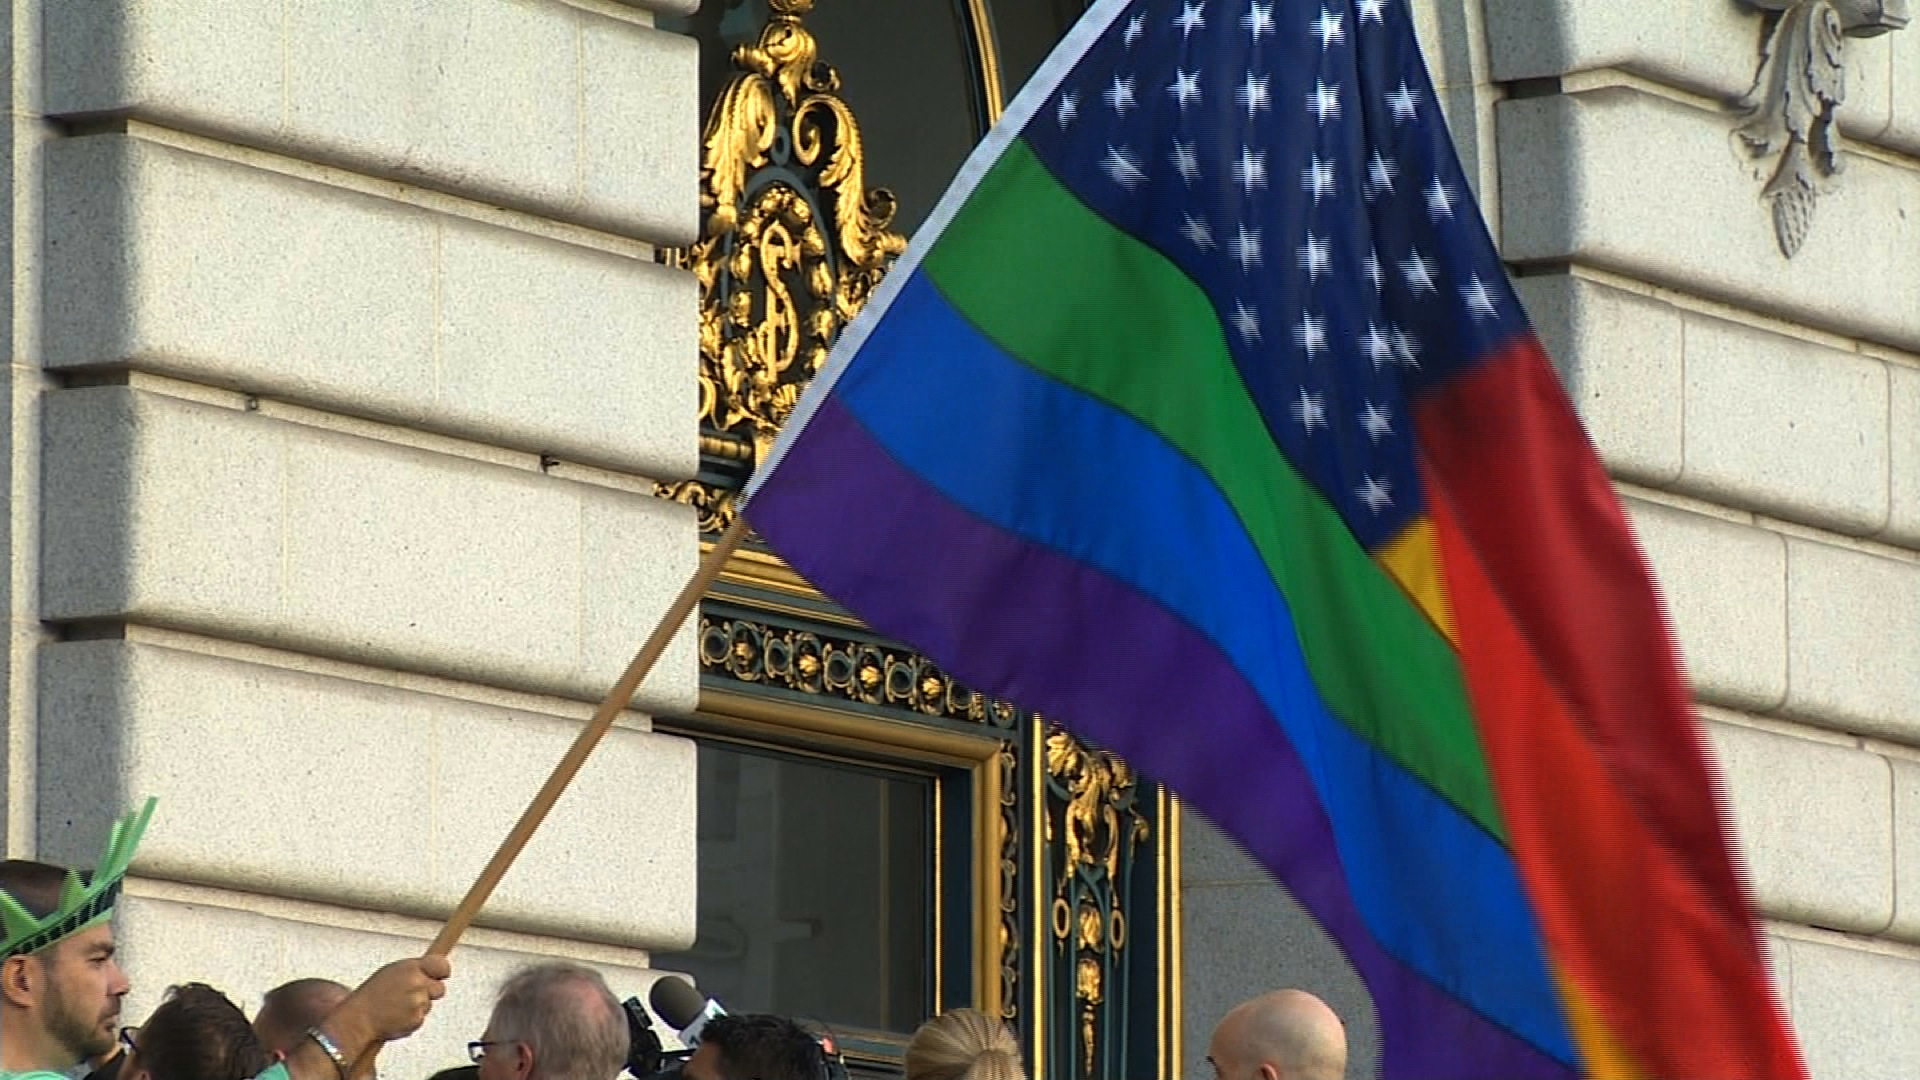 It's widely expected that we'll get rulings on the federal Defense of Marriage Act (DOMA) and California's Proposition 8 on June 26, 2013, and those rulings could affect the lives, rights and finances of millions of Americans.